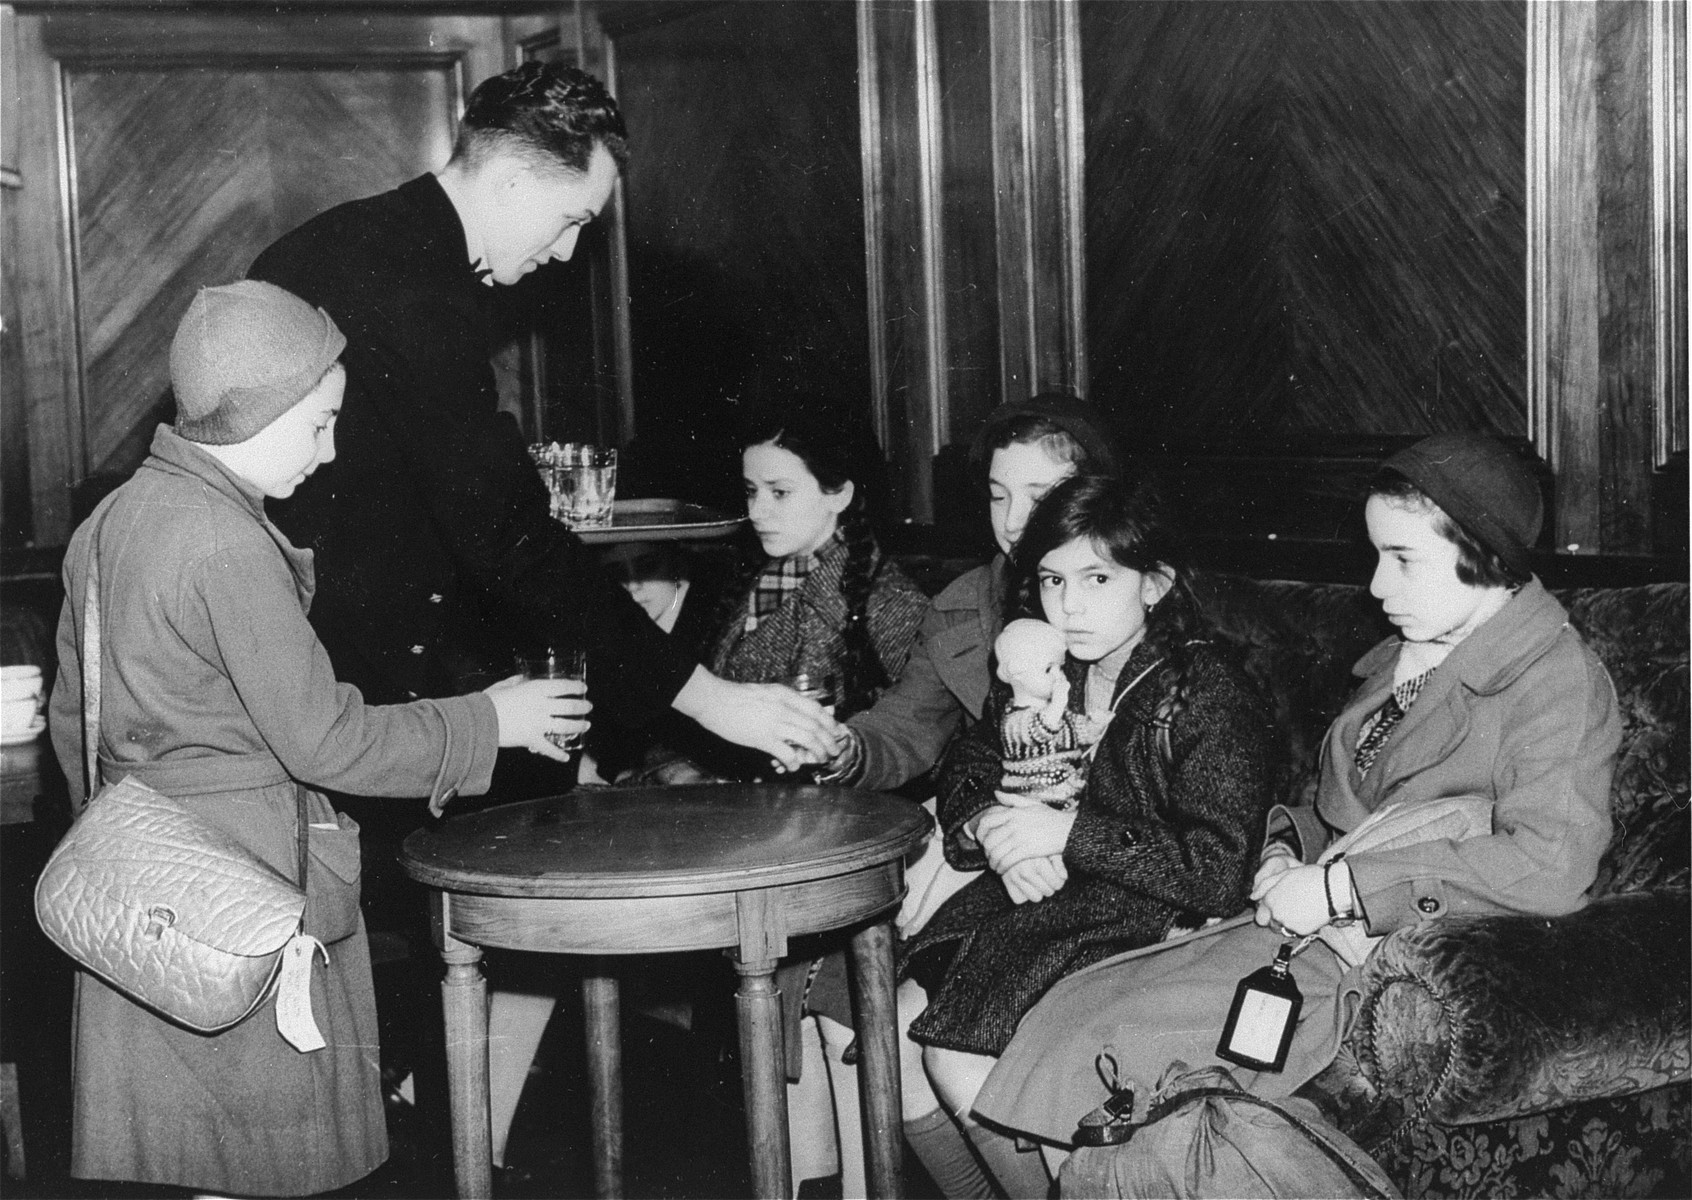 Jewish refugee children, who are members of the first Kindertransport from Germany, arrive in Harwich, England.